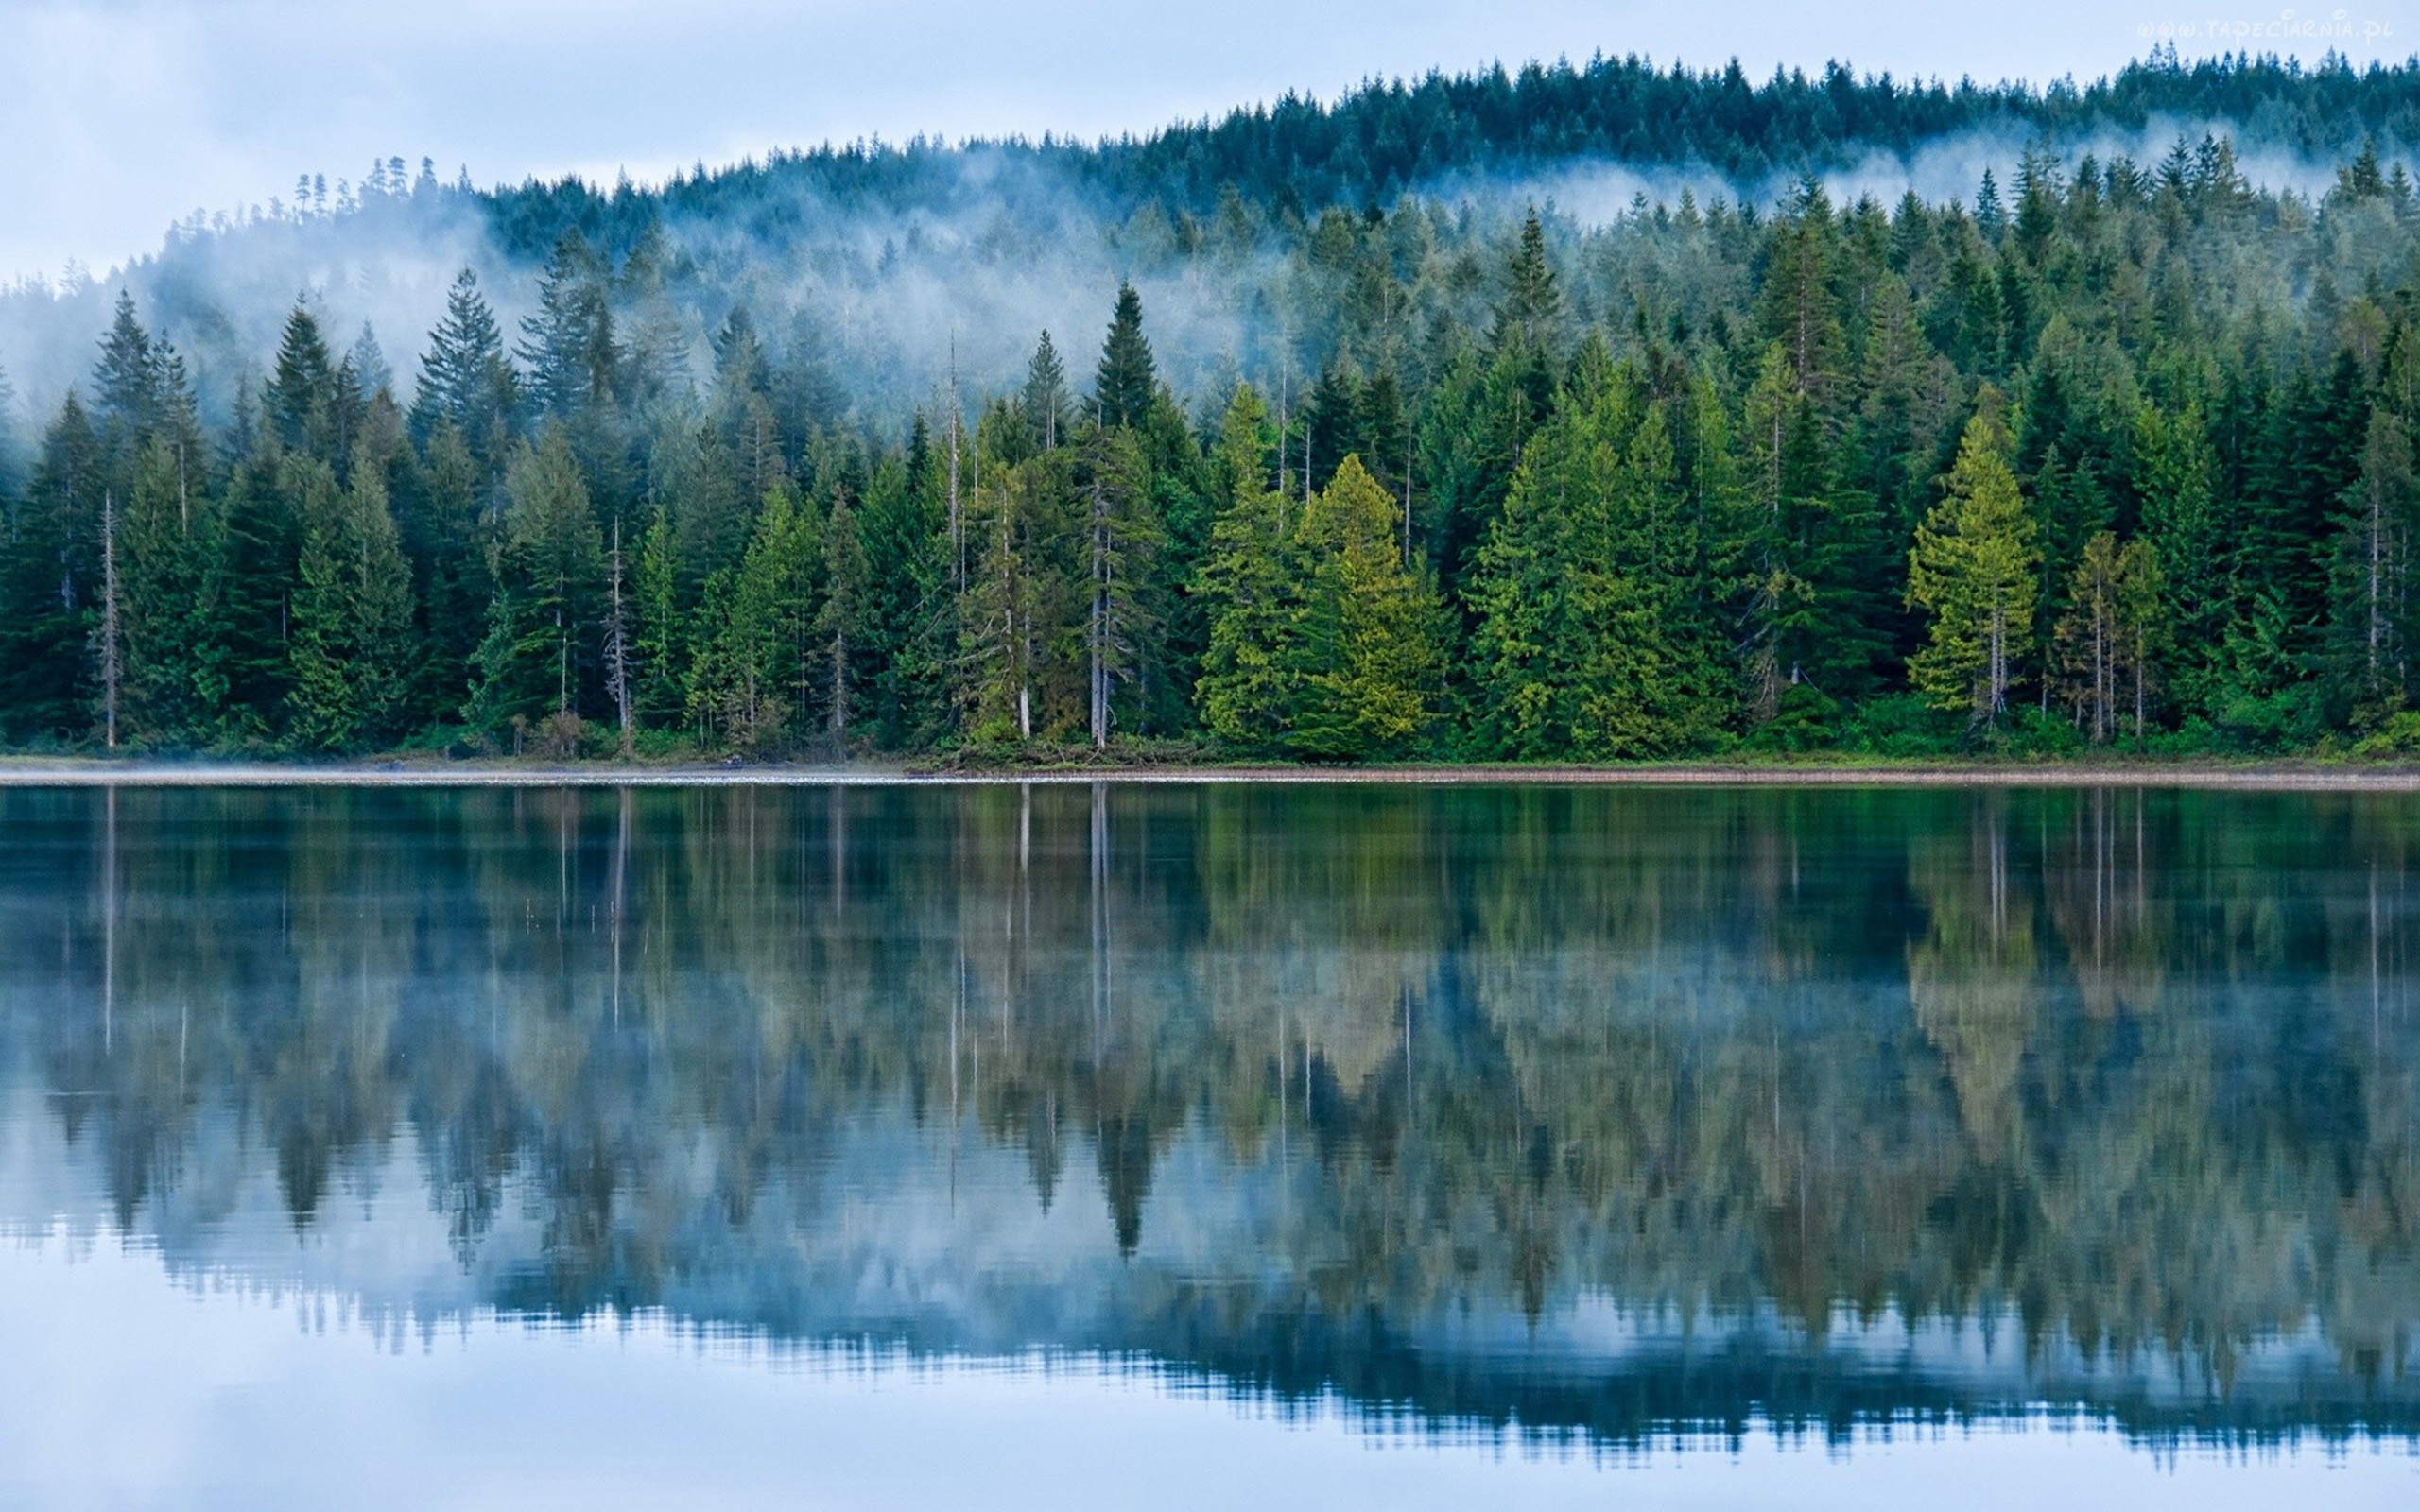 Fall In Colorado Wallpaper Reflection On The Lake Pine Forest Fog Hd Desktop